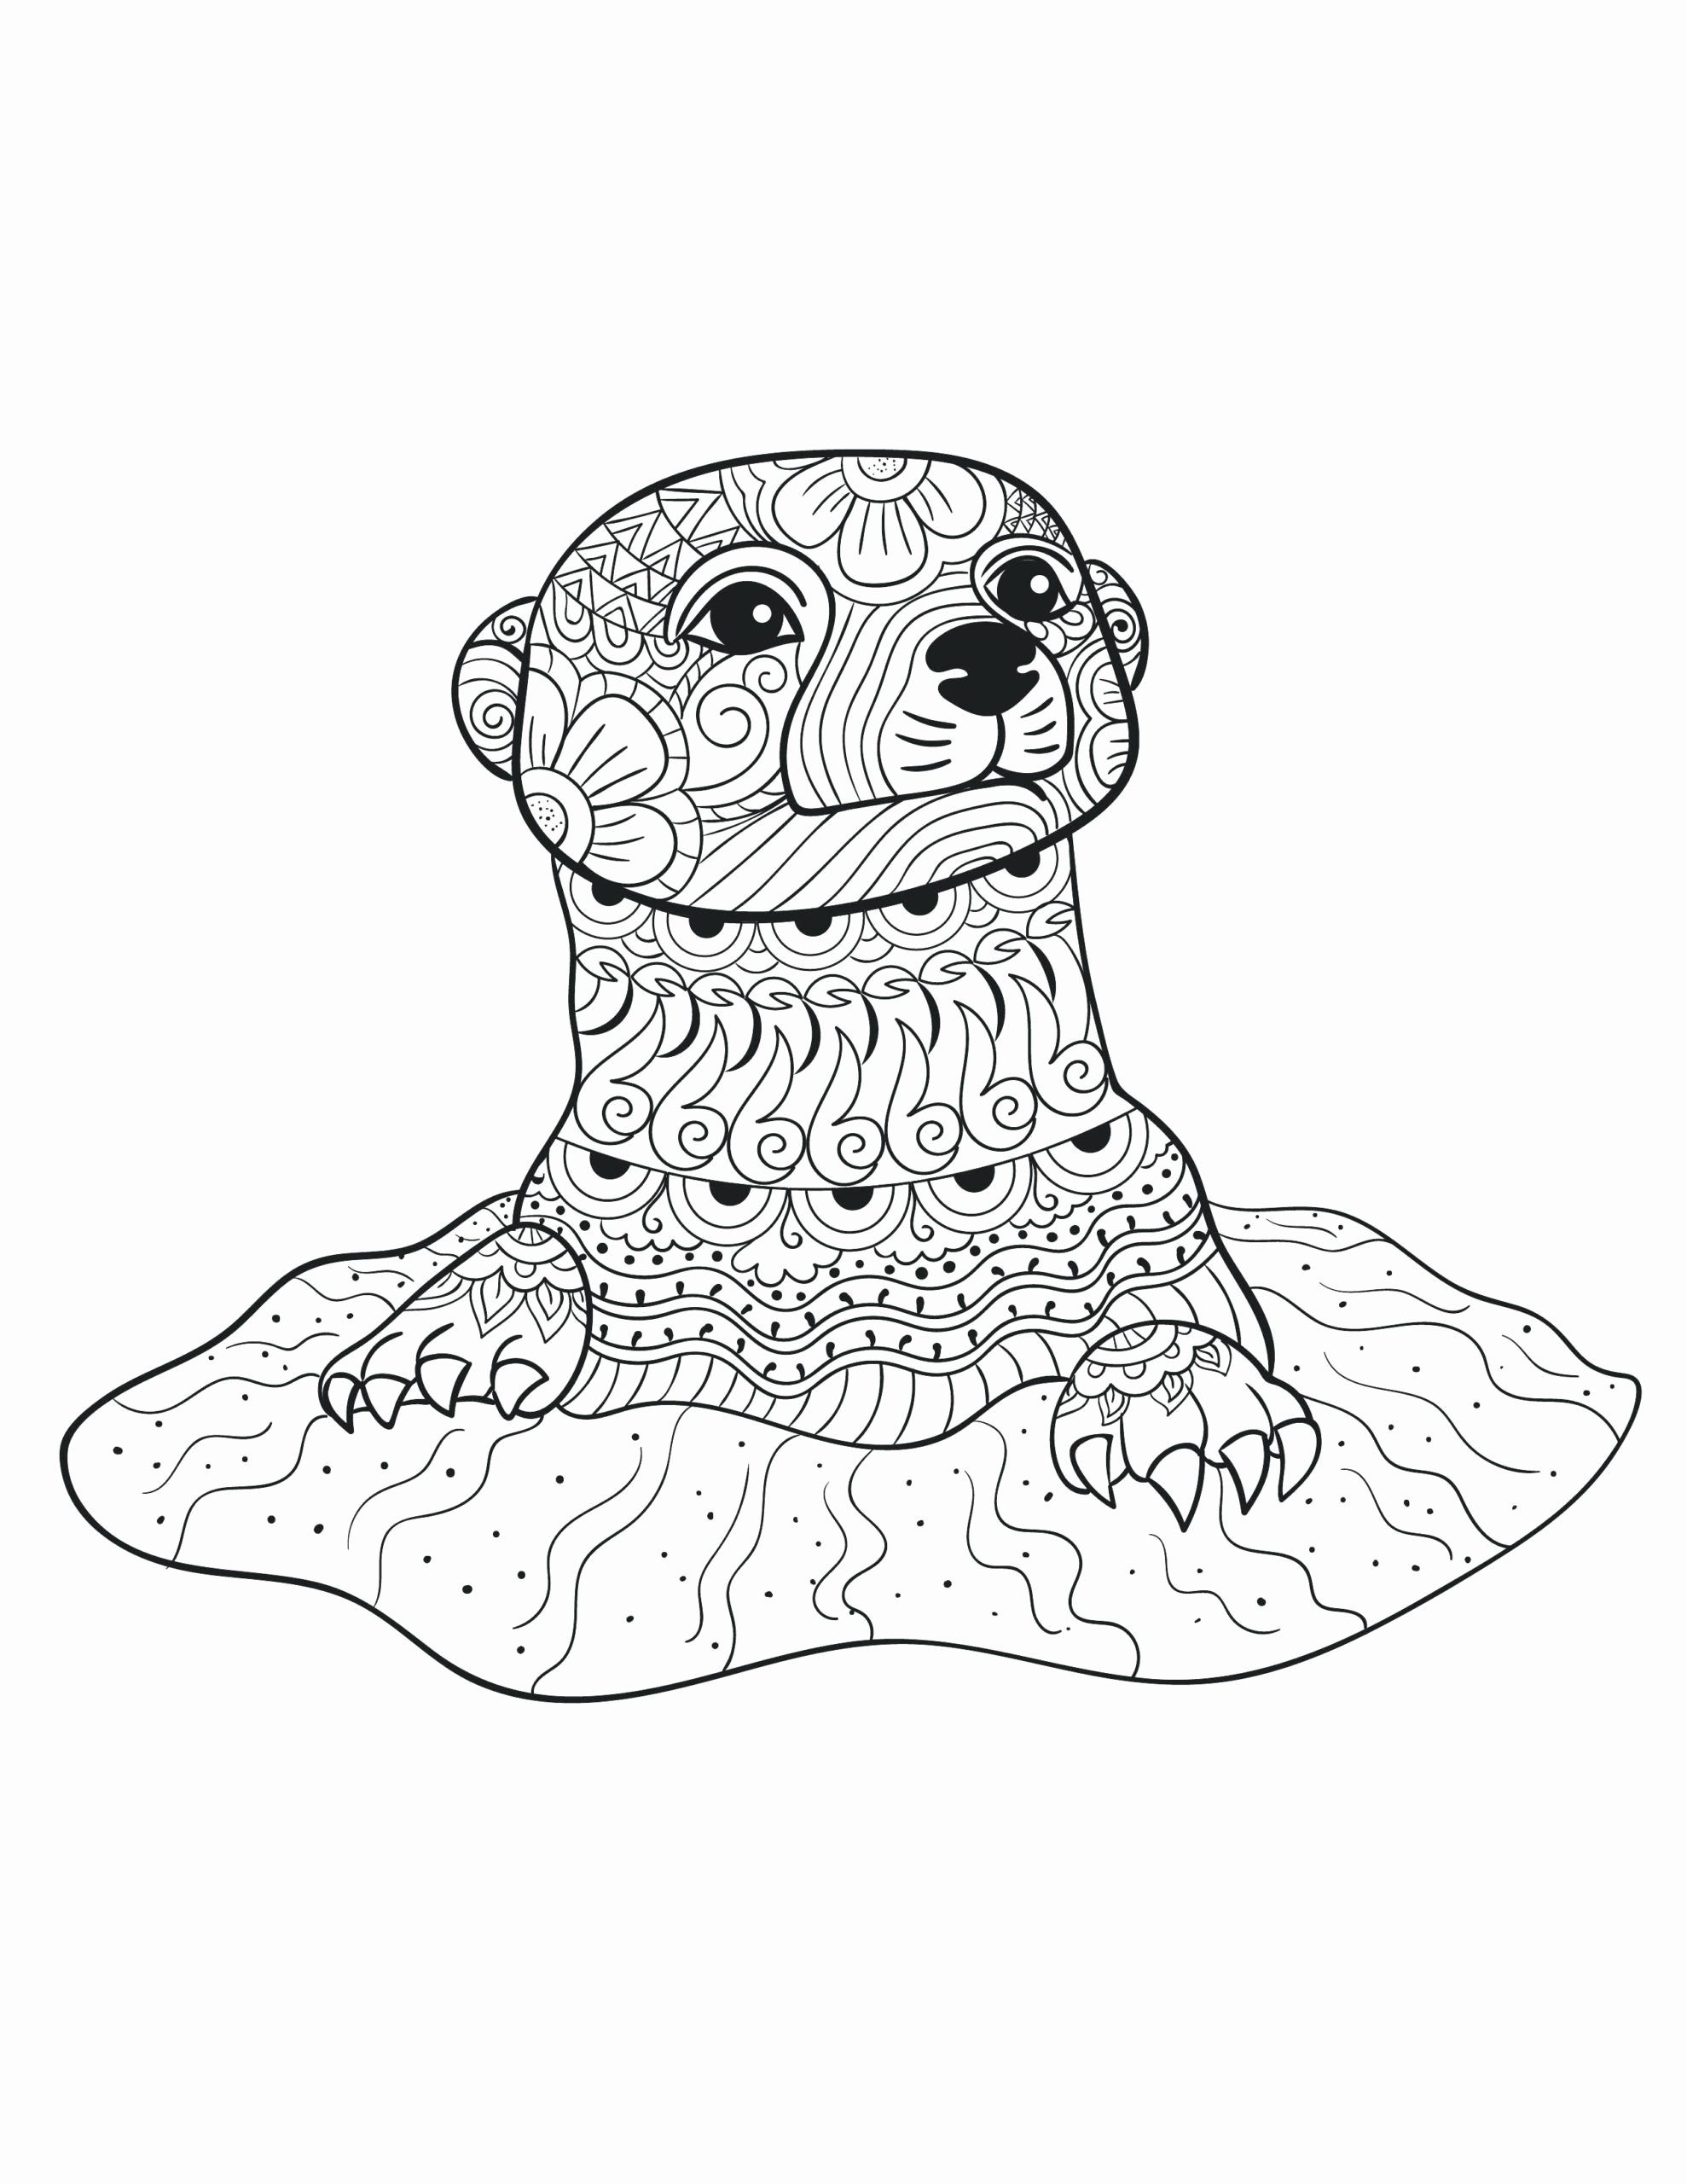 Cute Animal Coloring Pages Printable Beautiful Coloring 55 Fantastic Adault Animal Coloring In 2020 Animal Coloring Pages Zoo Animal Coloring Pages Zoo Coloring Pages